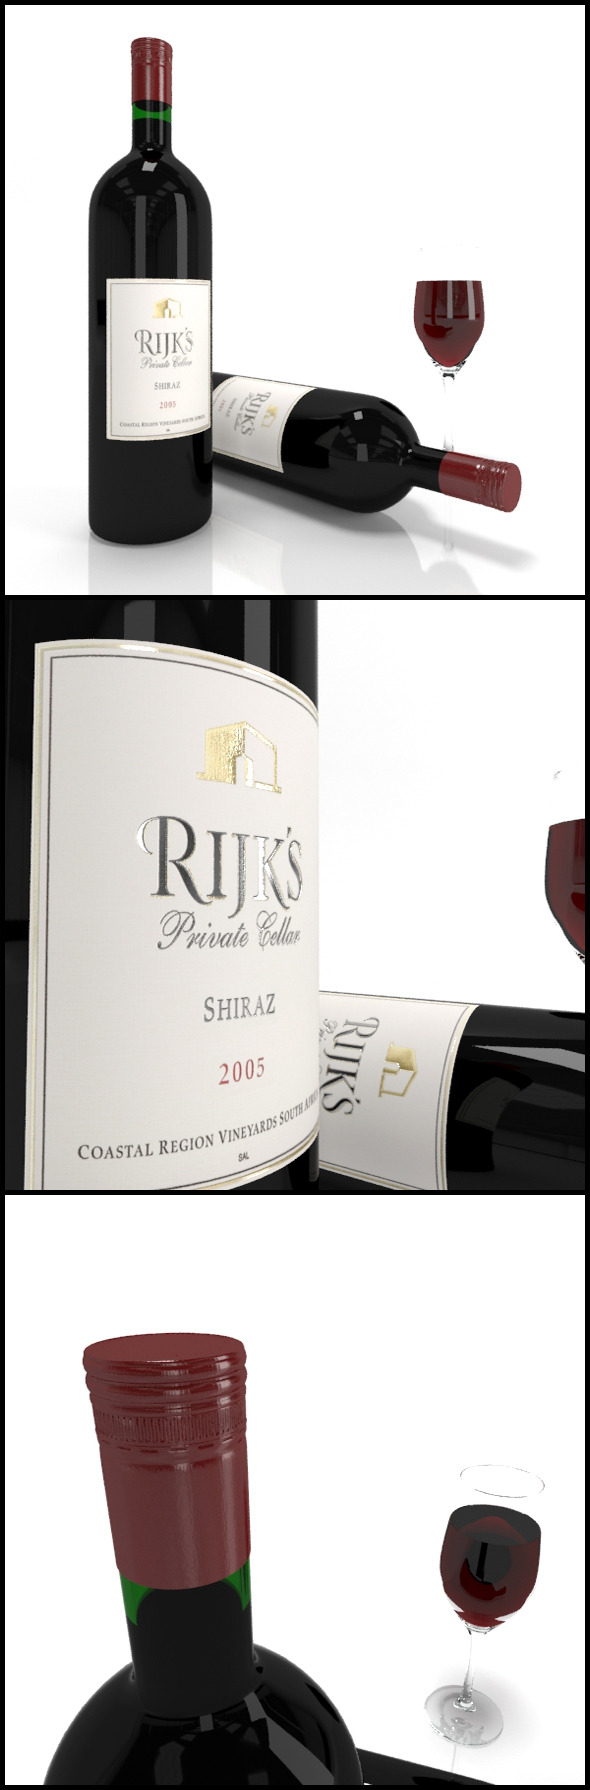 Red wine bottles & full glass: Rijk Shiraz 2005  - 3DOcean Item for Sale